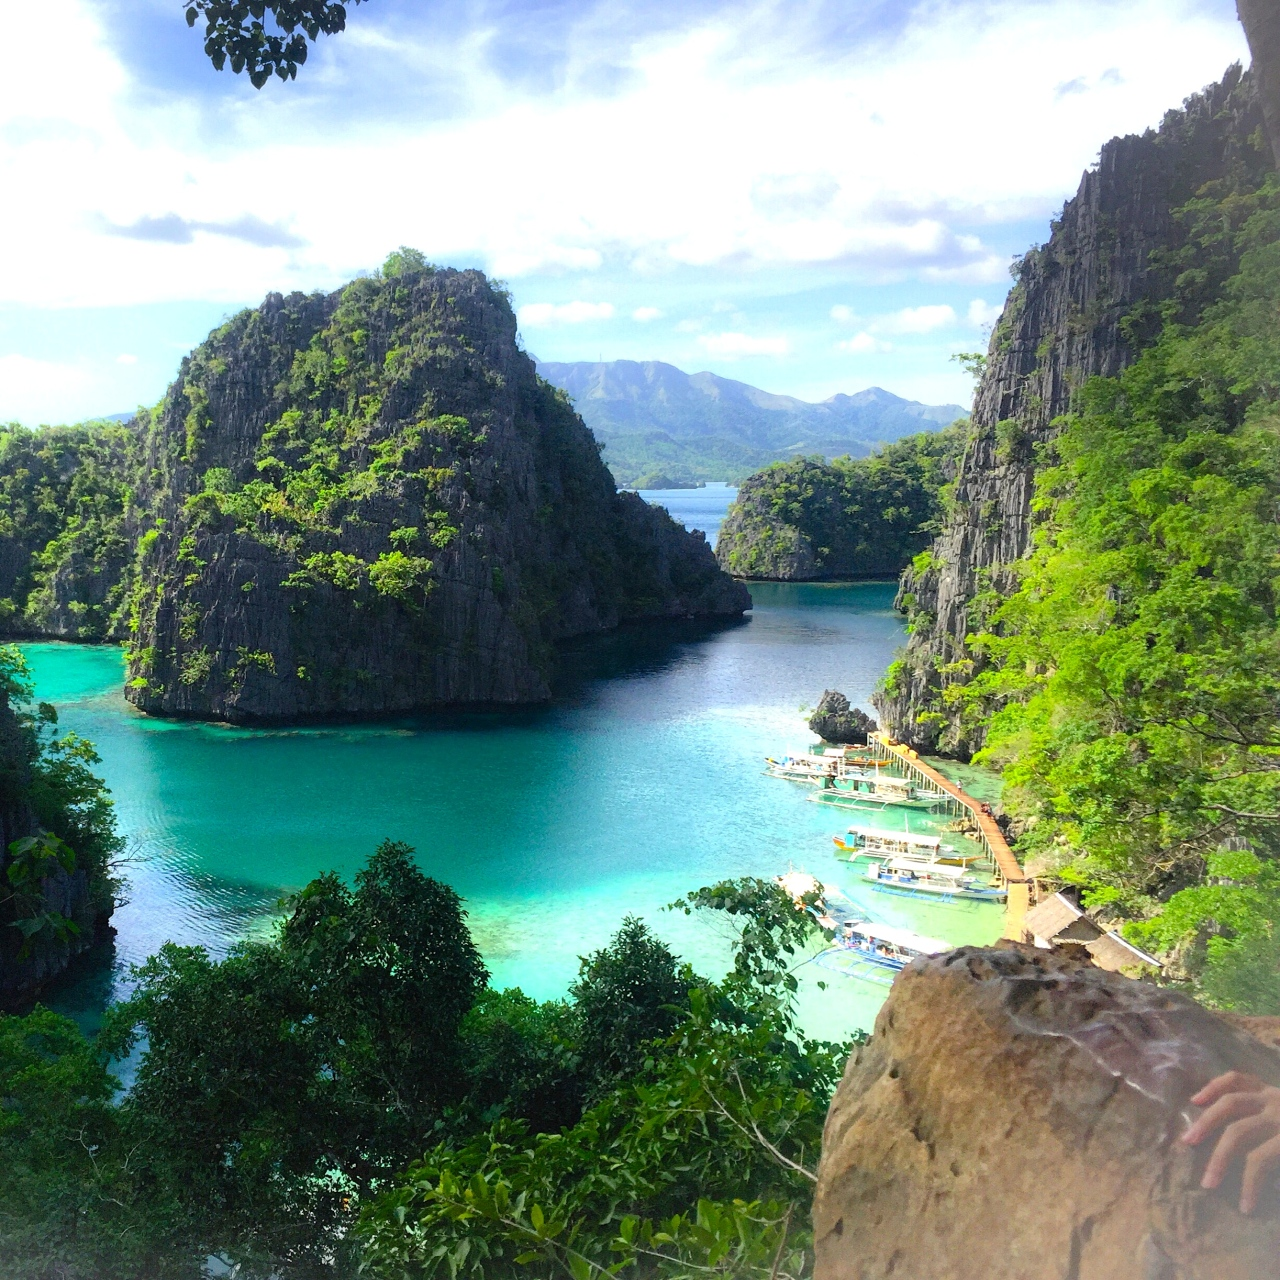 Coron: The best of Palawan's thousand treasures